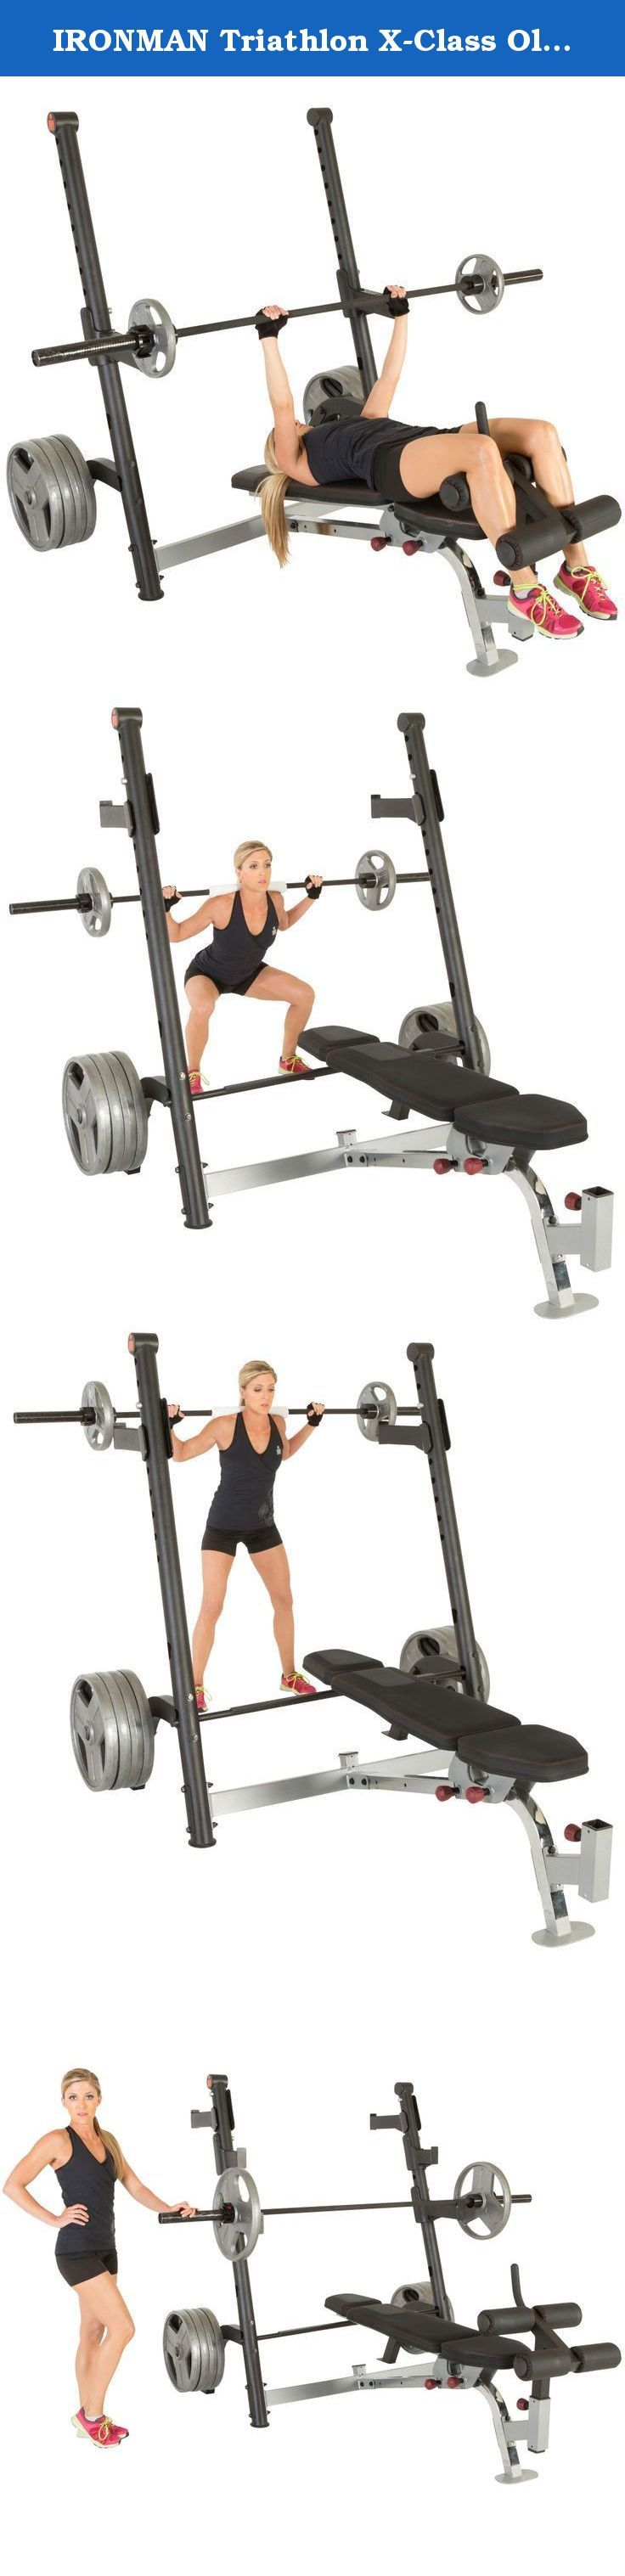 IRONMAN Triathlon X-Class Olympic Weight Bench with Preacher Curl & Leg Developer Attachment. ANYTHING is possible. The Ironman brand is a statement of excellence, commitment, passion, perseverance and the spirit of never giving up. Ironman fitness has taken on the challenge of designing and developing a full line of heavy duty high end home, light commercial grade, strength and weight training equipment. No need to go to the gym or fitness center, when you can get the workout you want…